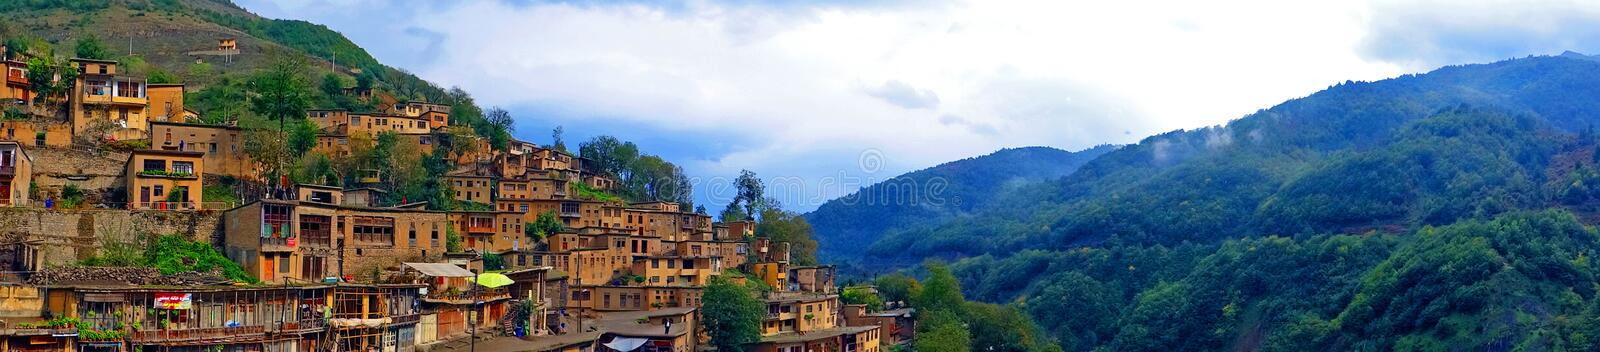 Panoramic view of Masouleh, Iran. Masouleh, Village on the Roof in Iran royalty free stock photo